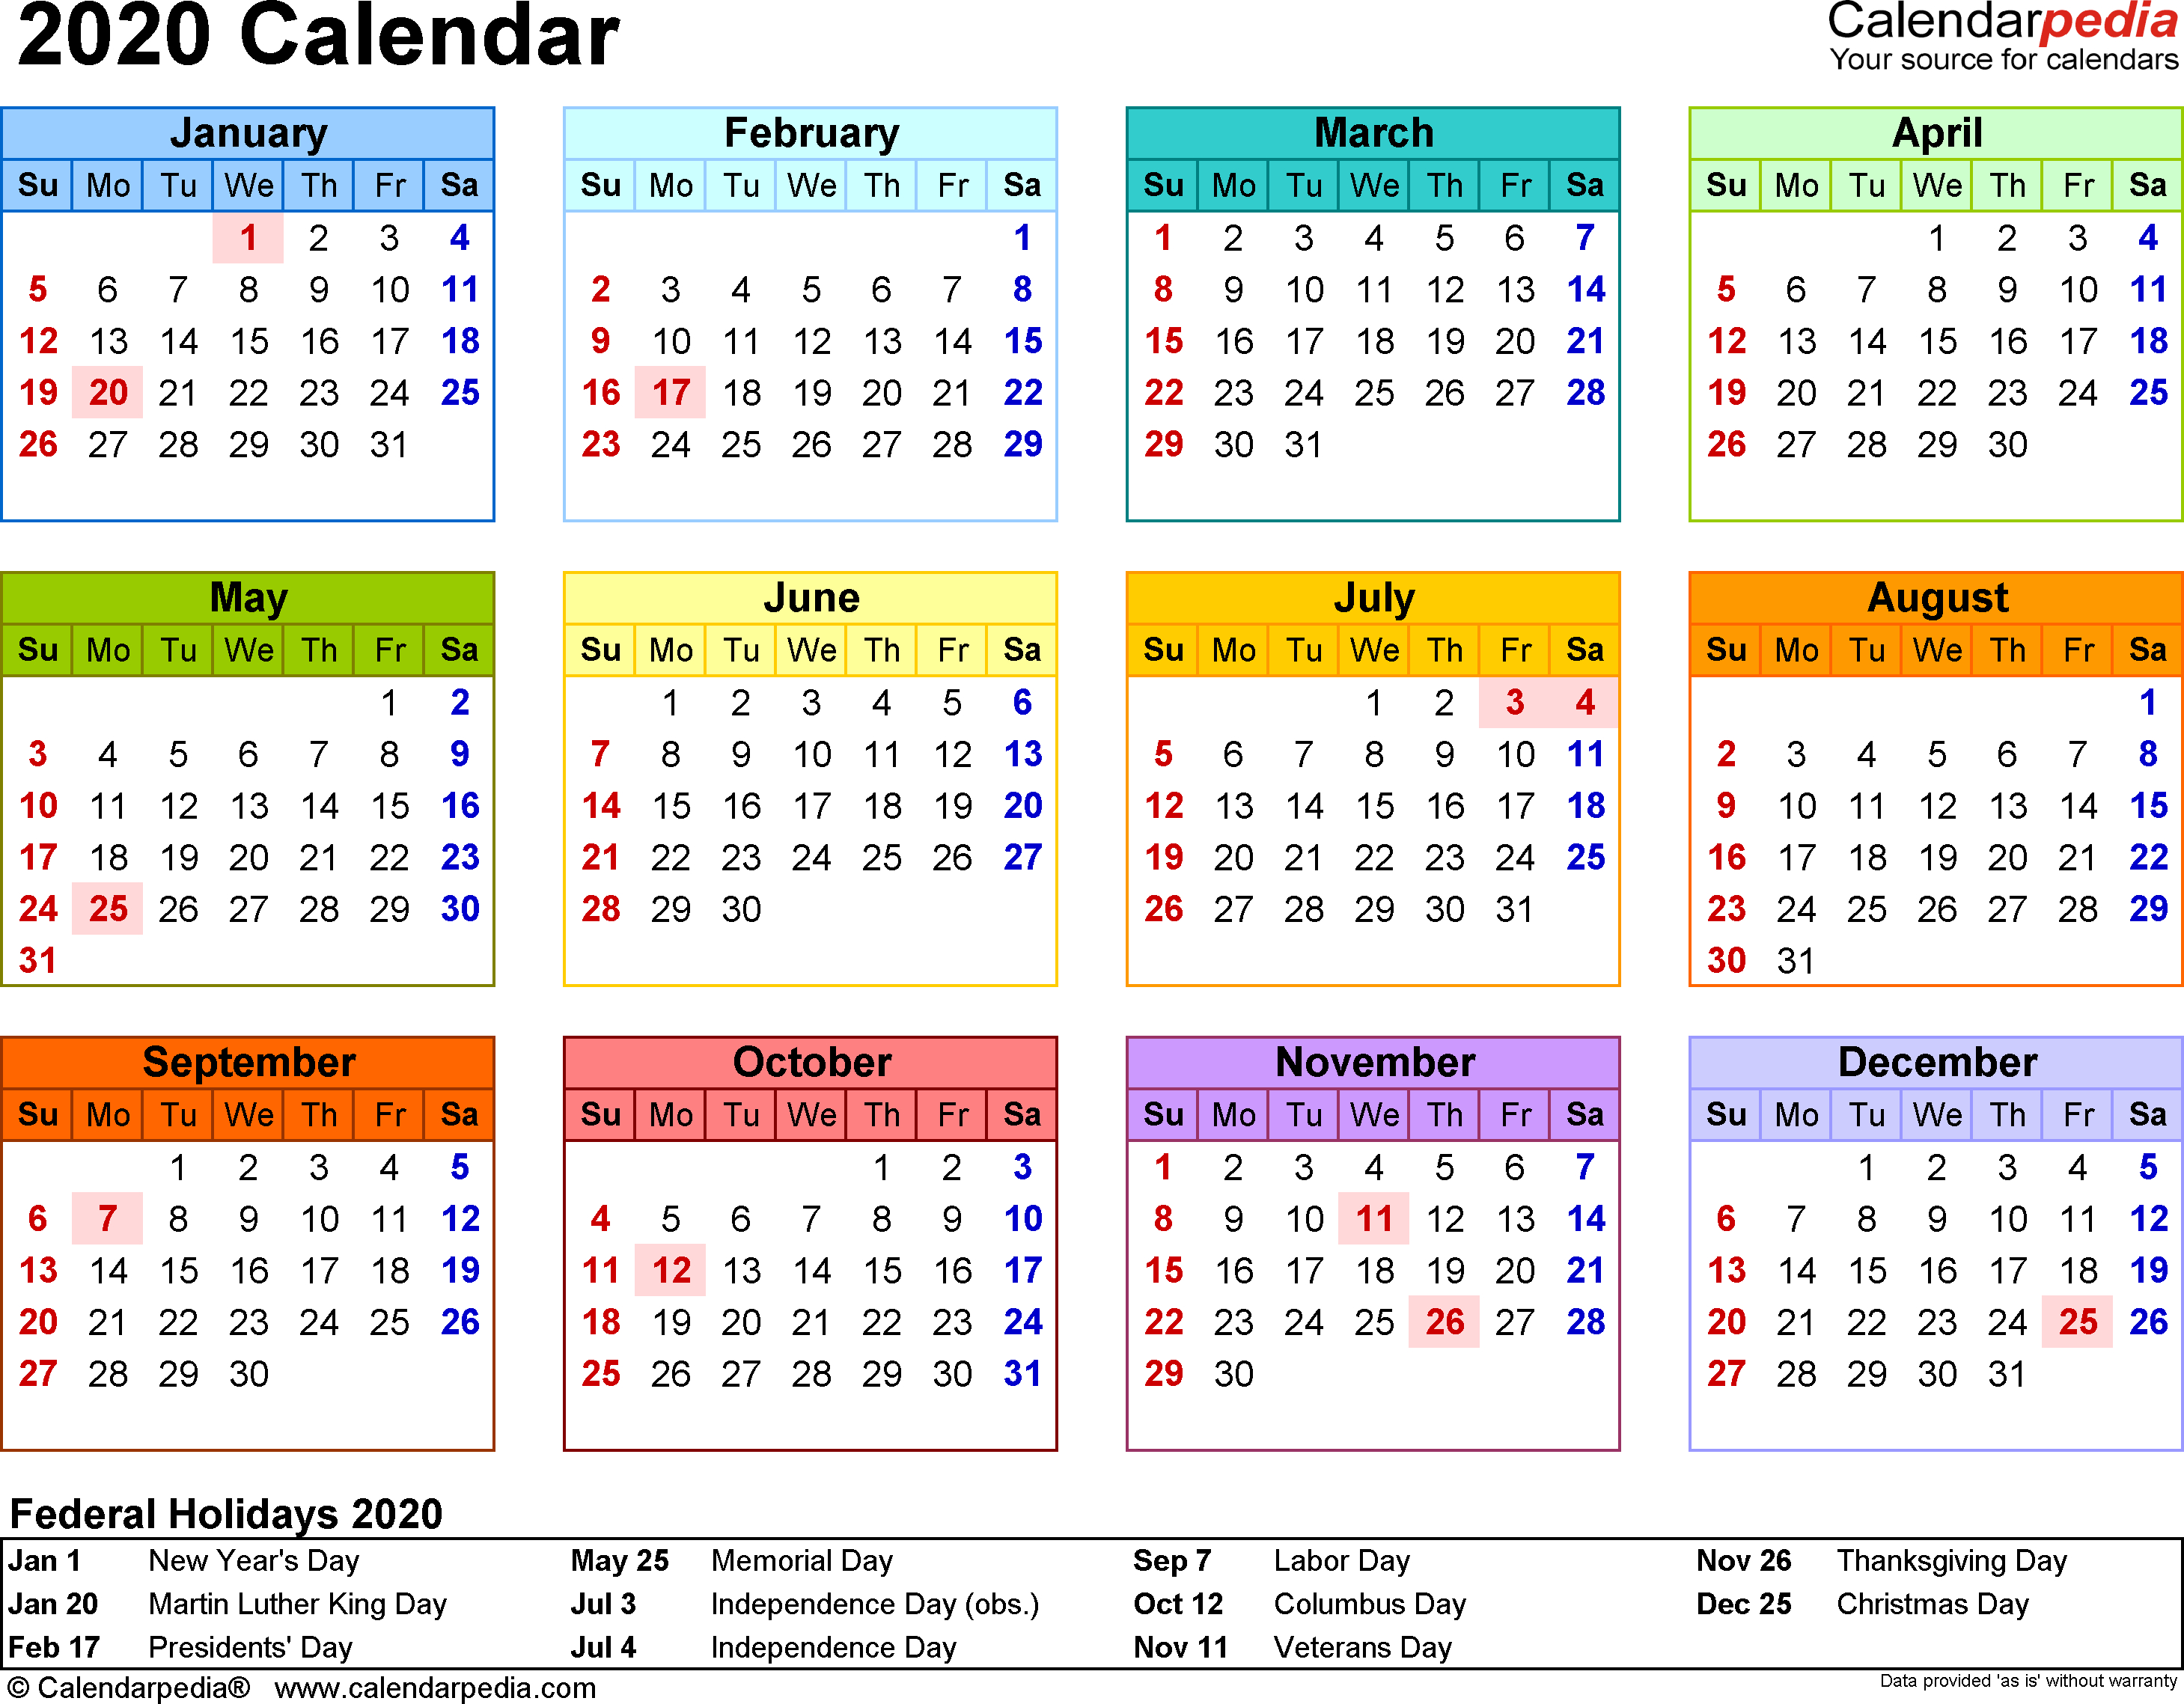 2020 Calendar  Download 18 Free Printable Excel Templates for School Terms 2020 South Africa